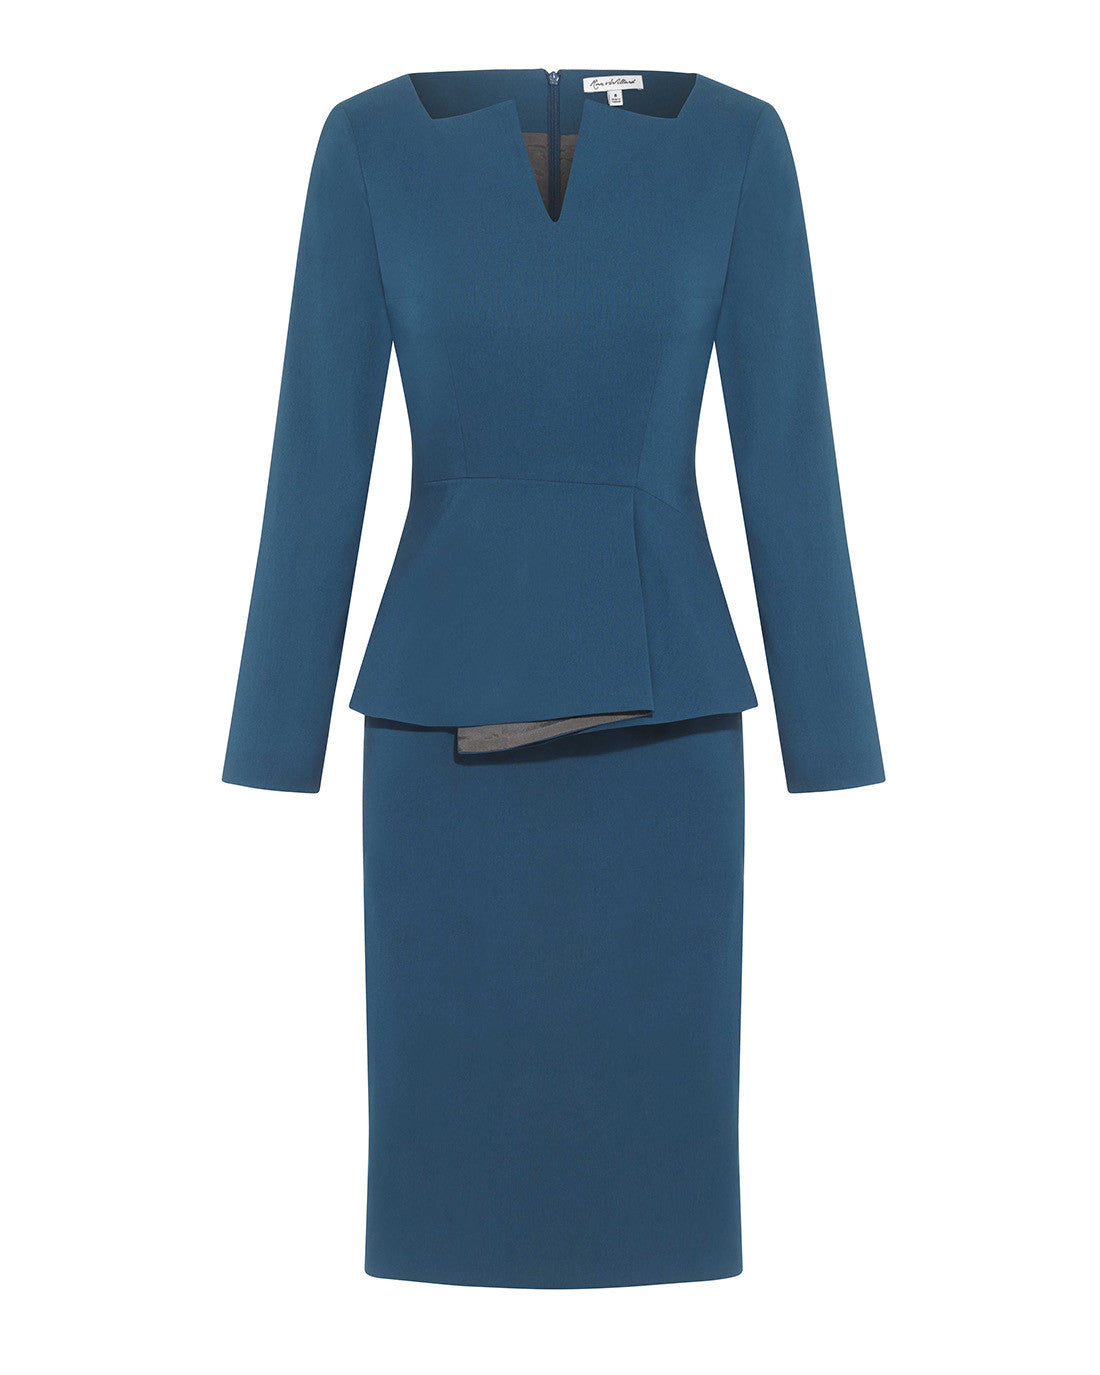 Fitted below the knee peplum smart dress for work turquoise